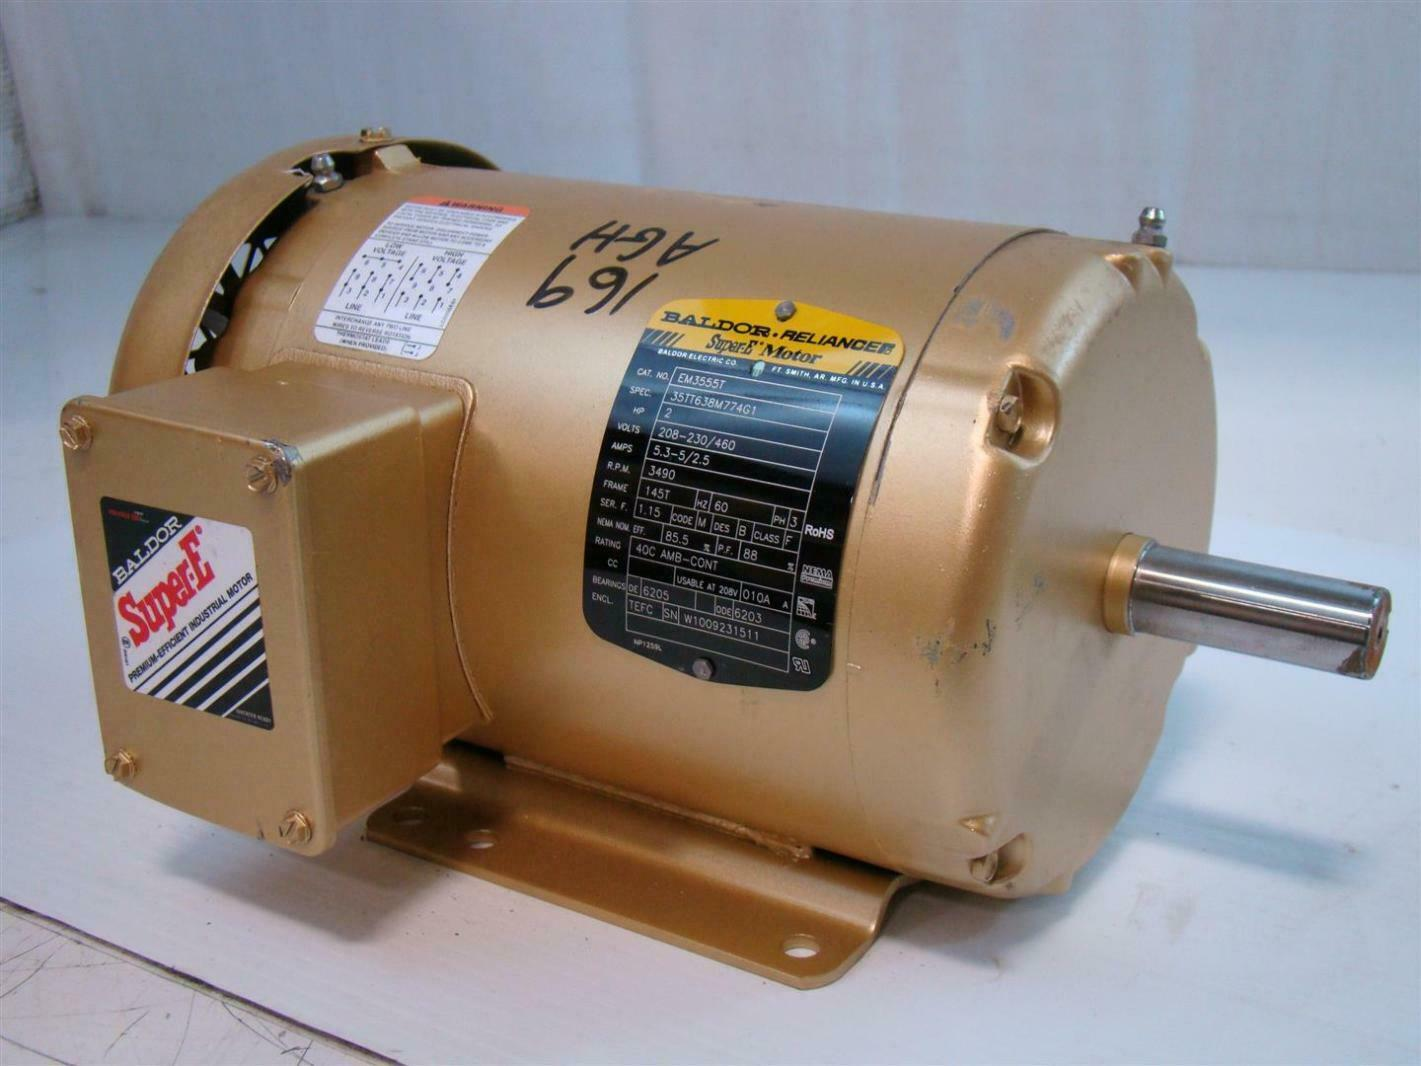 Baldor reliance super e motor 2hp 208 230 460v 5 3 5 2 for Baldor industrial motor parts